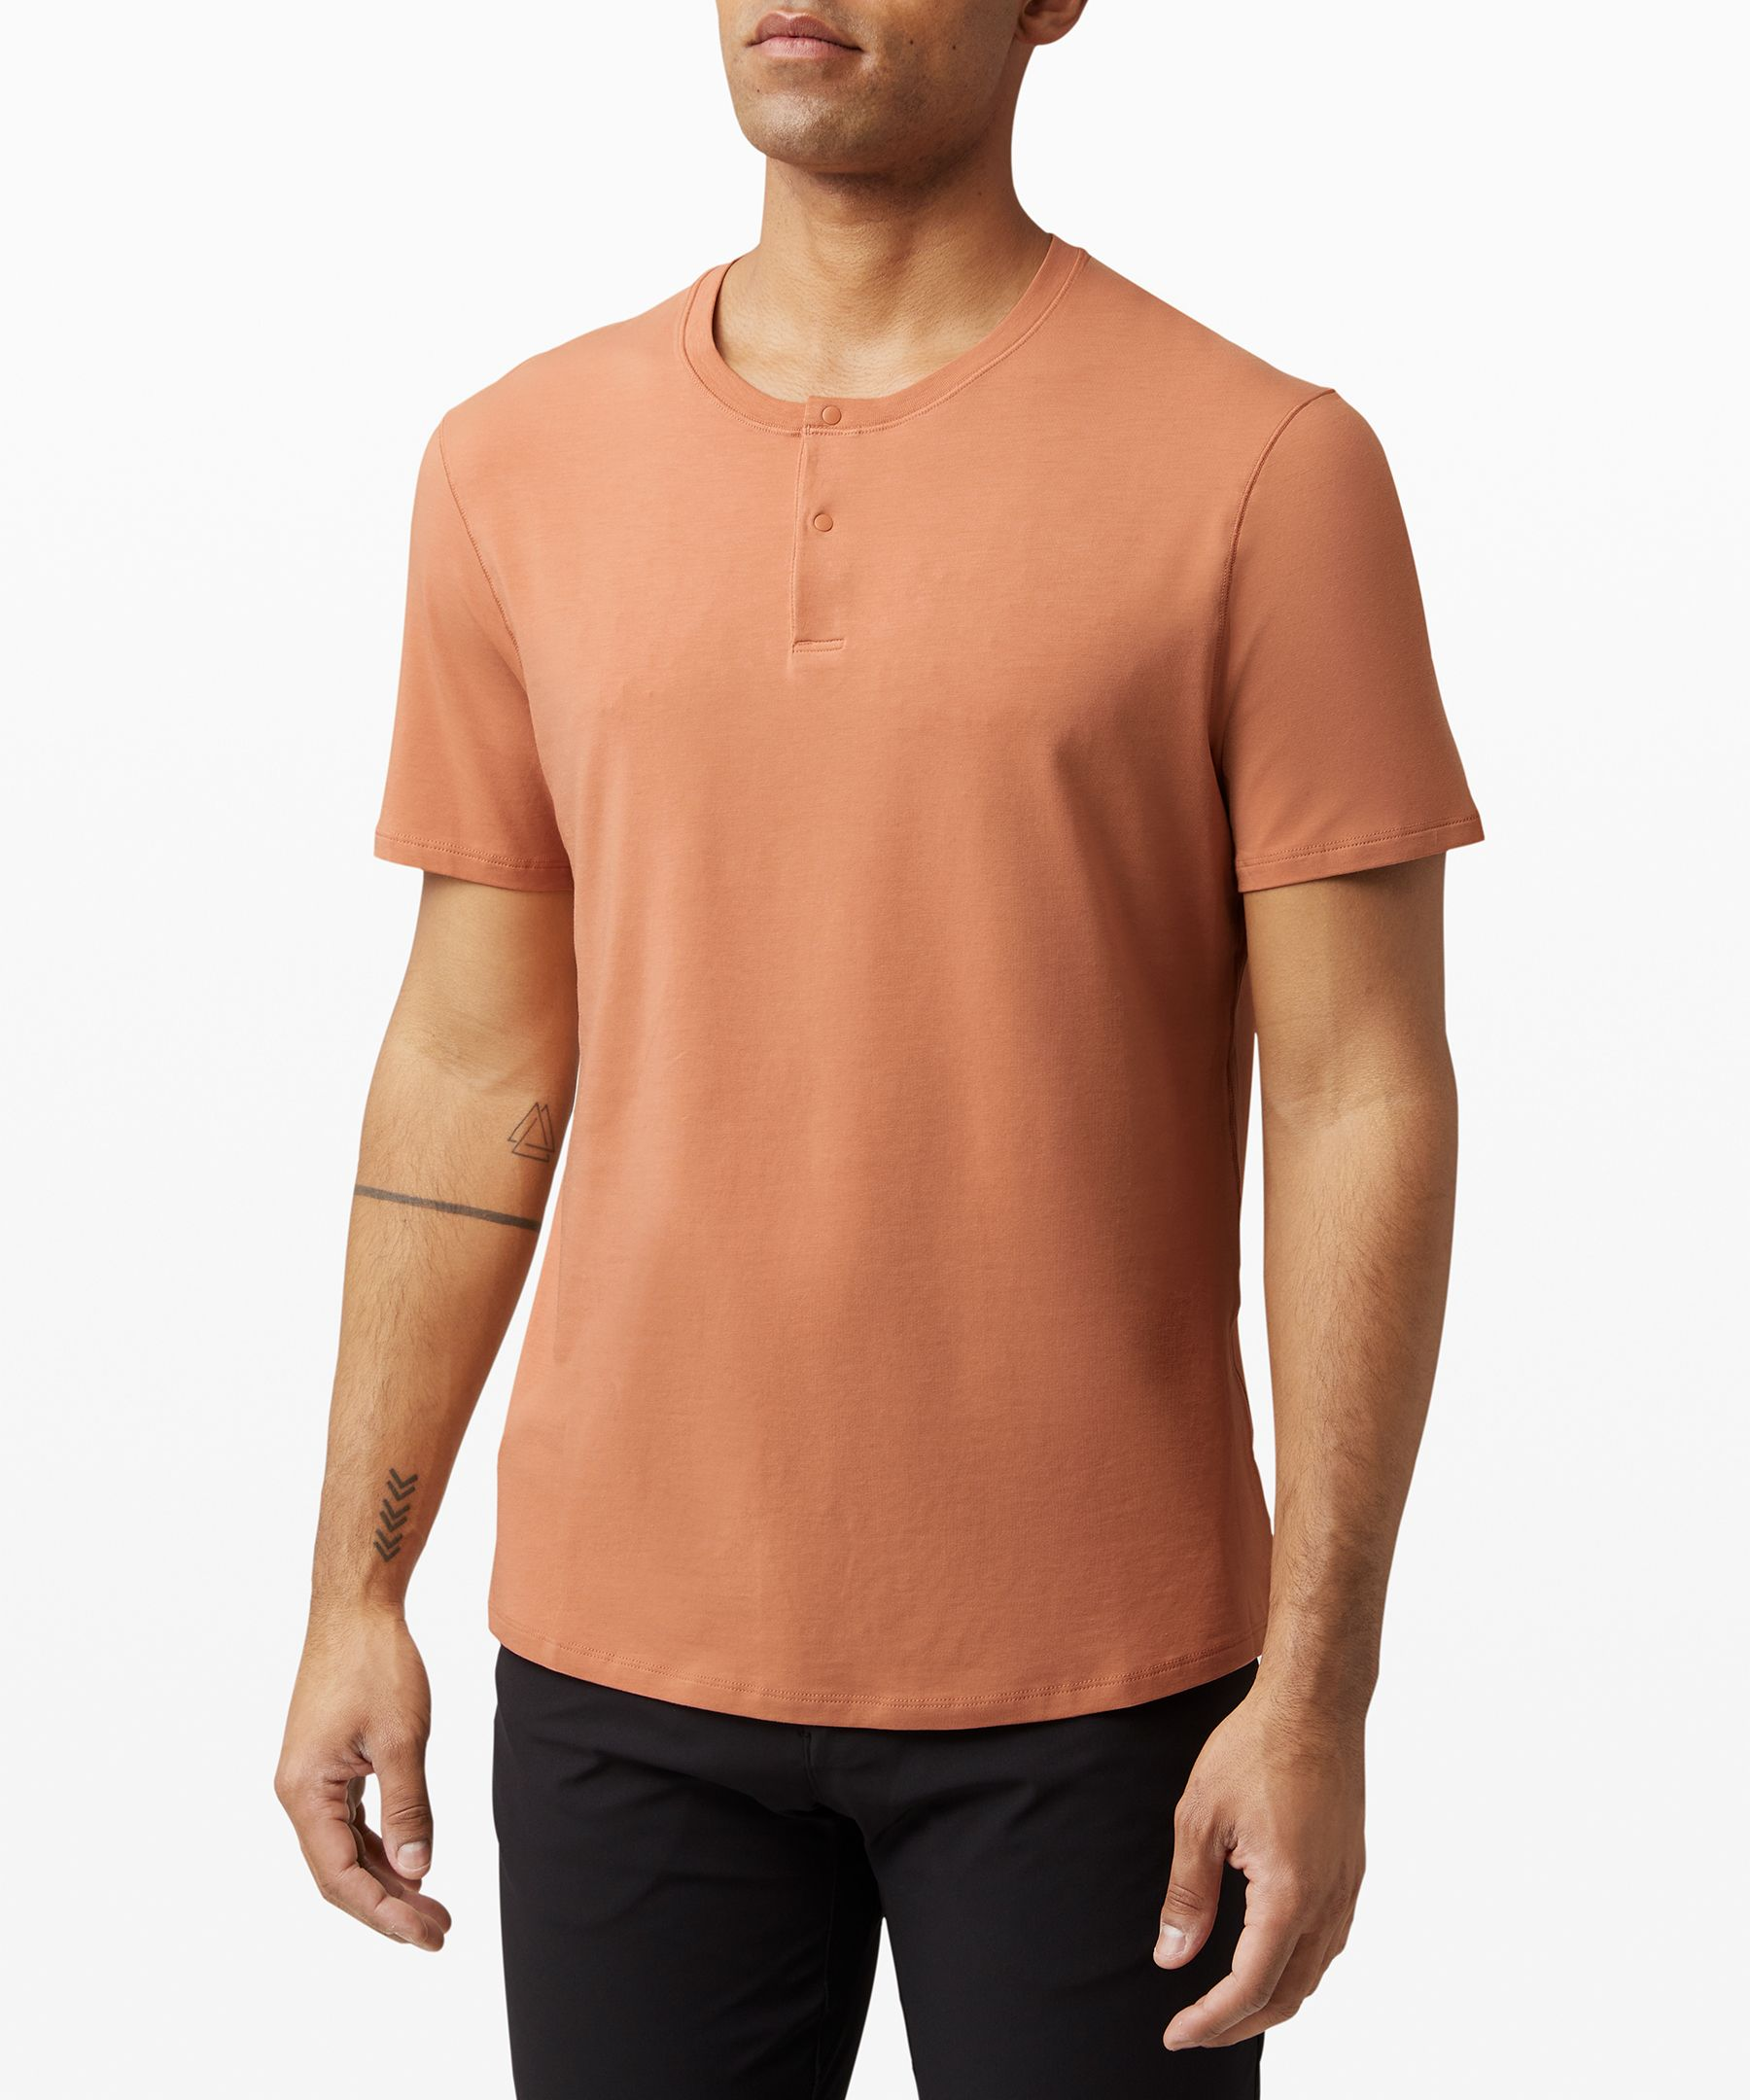 We made this versatile,  short-sleeve henley with  technical fabric that feels  natural, so you can move  through your day in comfort.